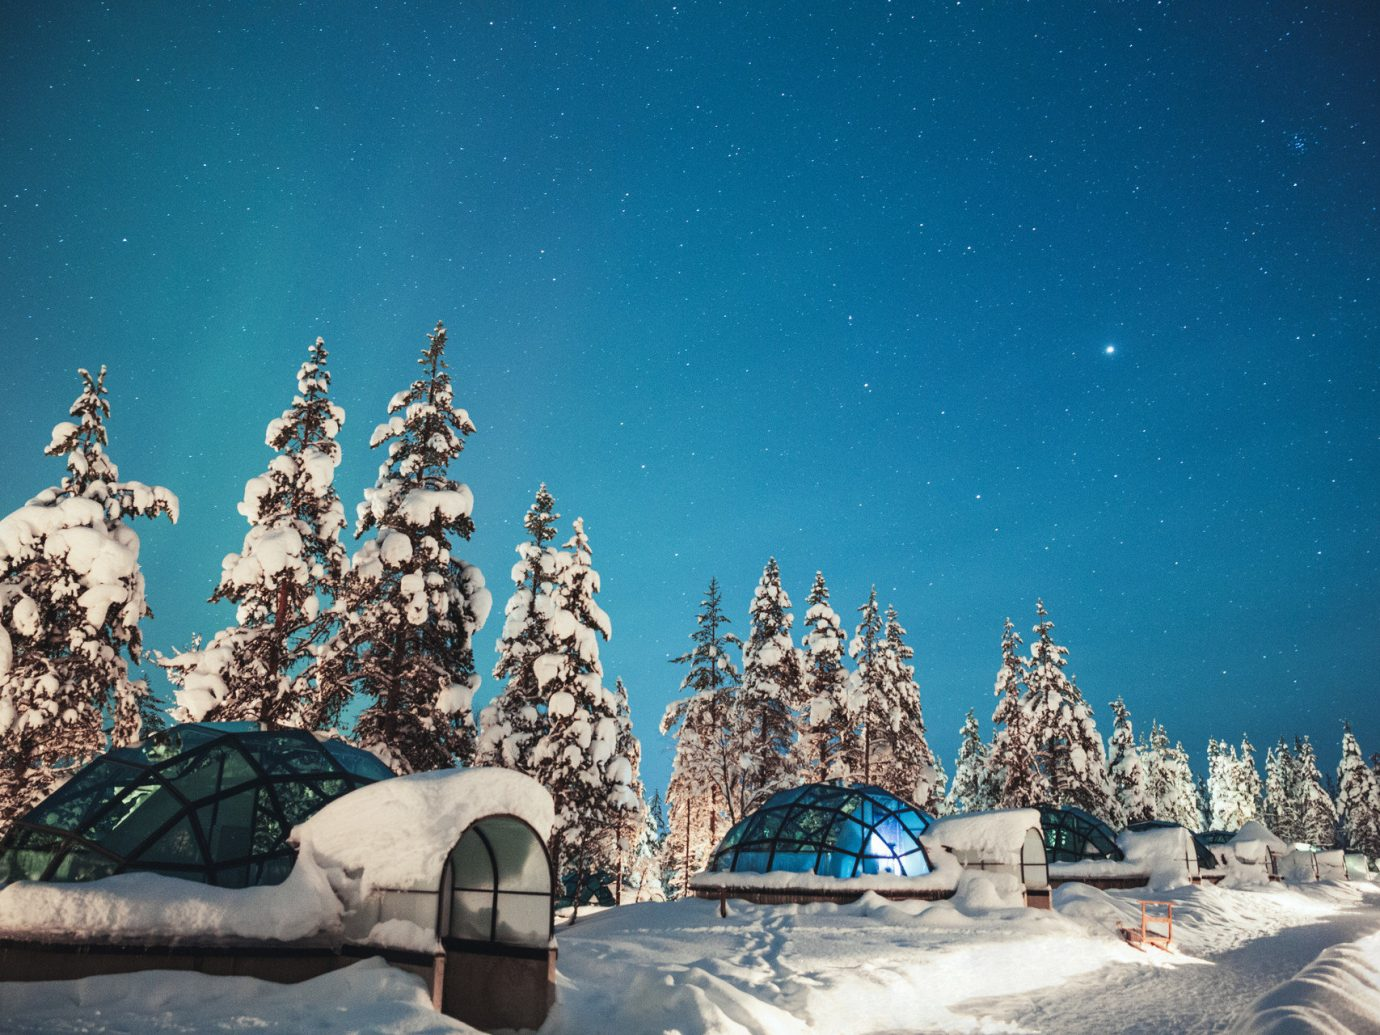 europe glass igloo glass igloos igloo igloos isolation night Outdoors remote snow Trip Ideas Winter outdoor ice